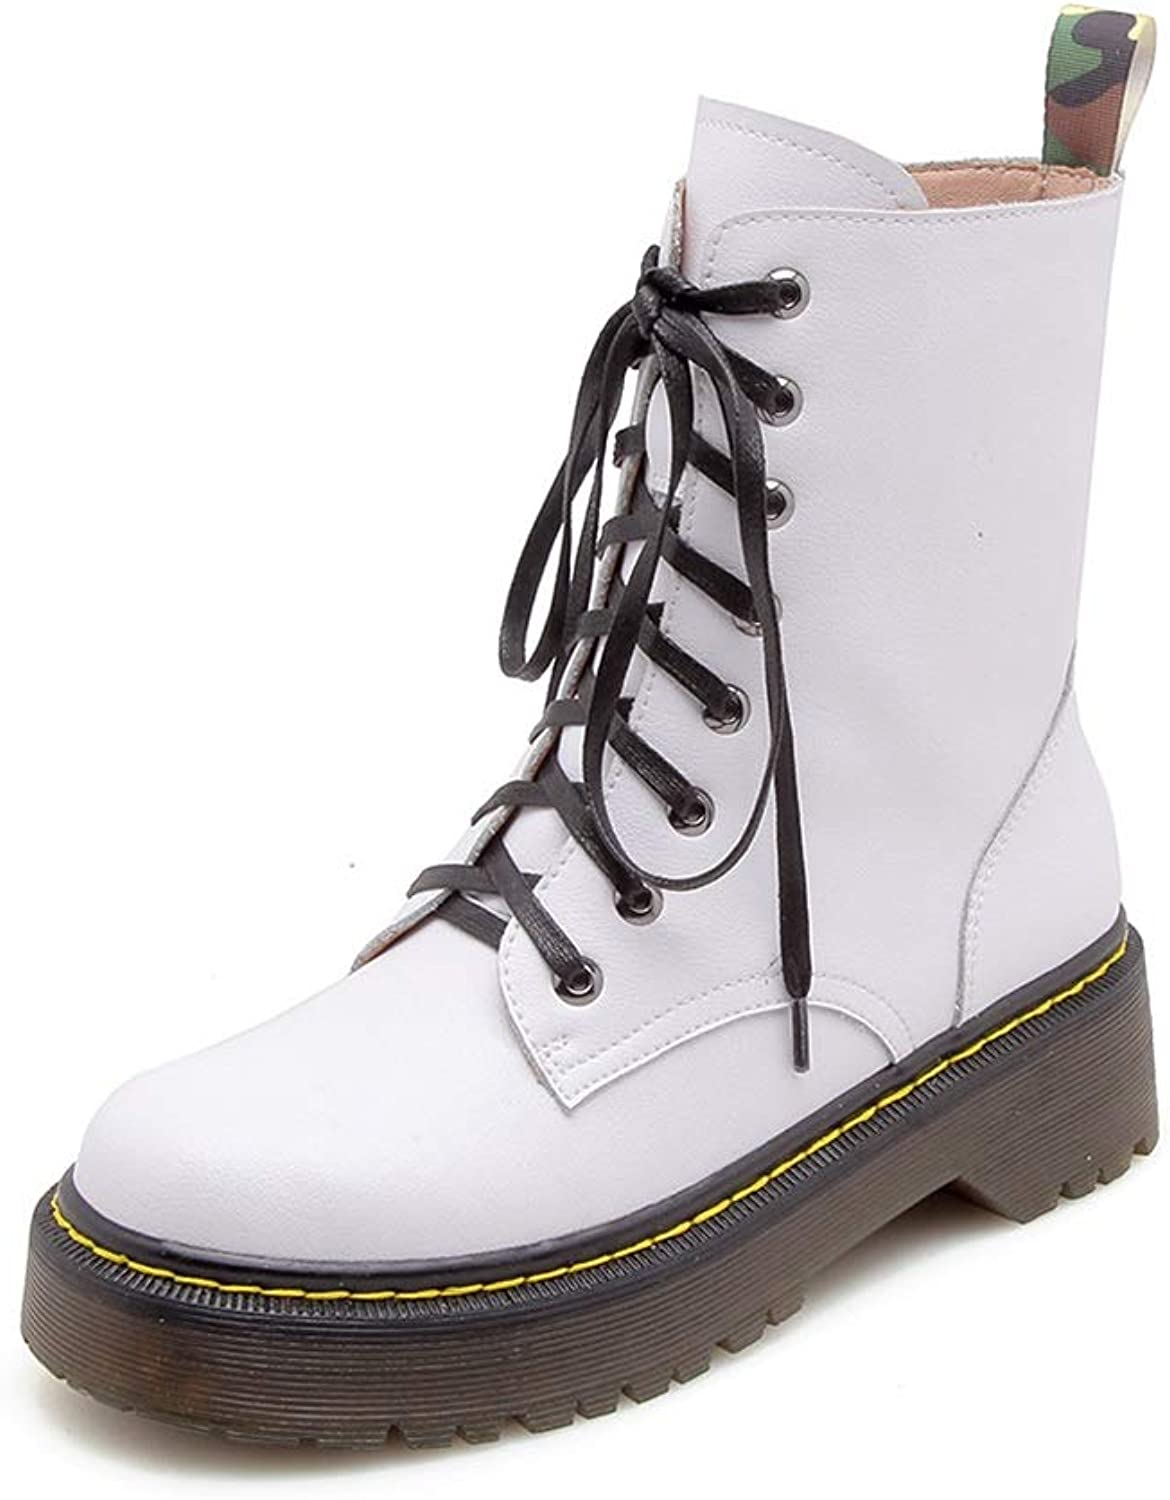 Women's shoes Leather Autumn Winter Rivets Boots Zipper Martin Boots High-top Casual shoes Outdoor Hiking shoes White Red Black (color   White, Size   39)